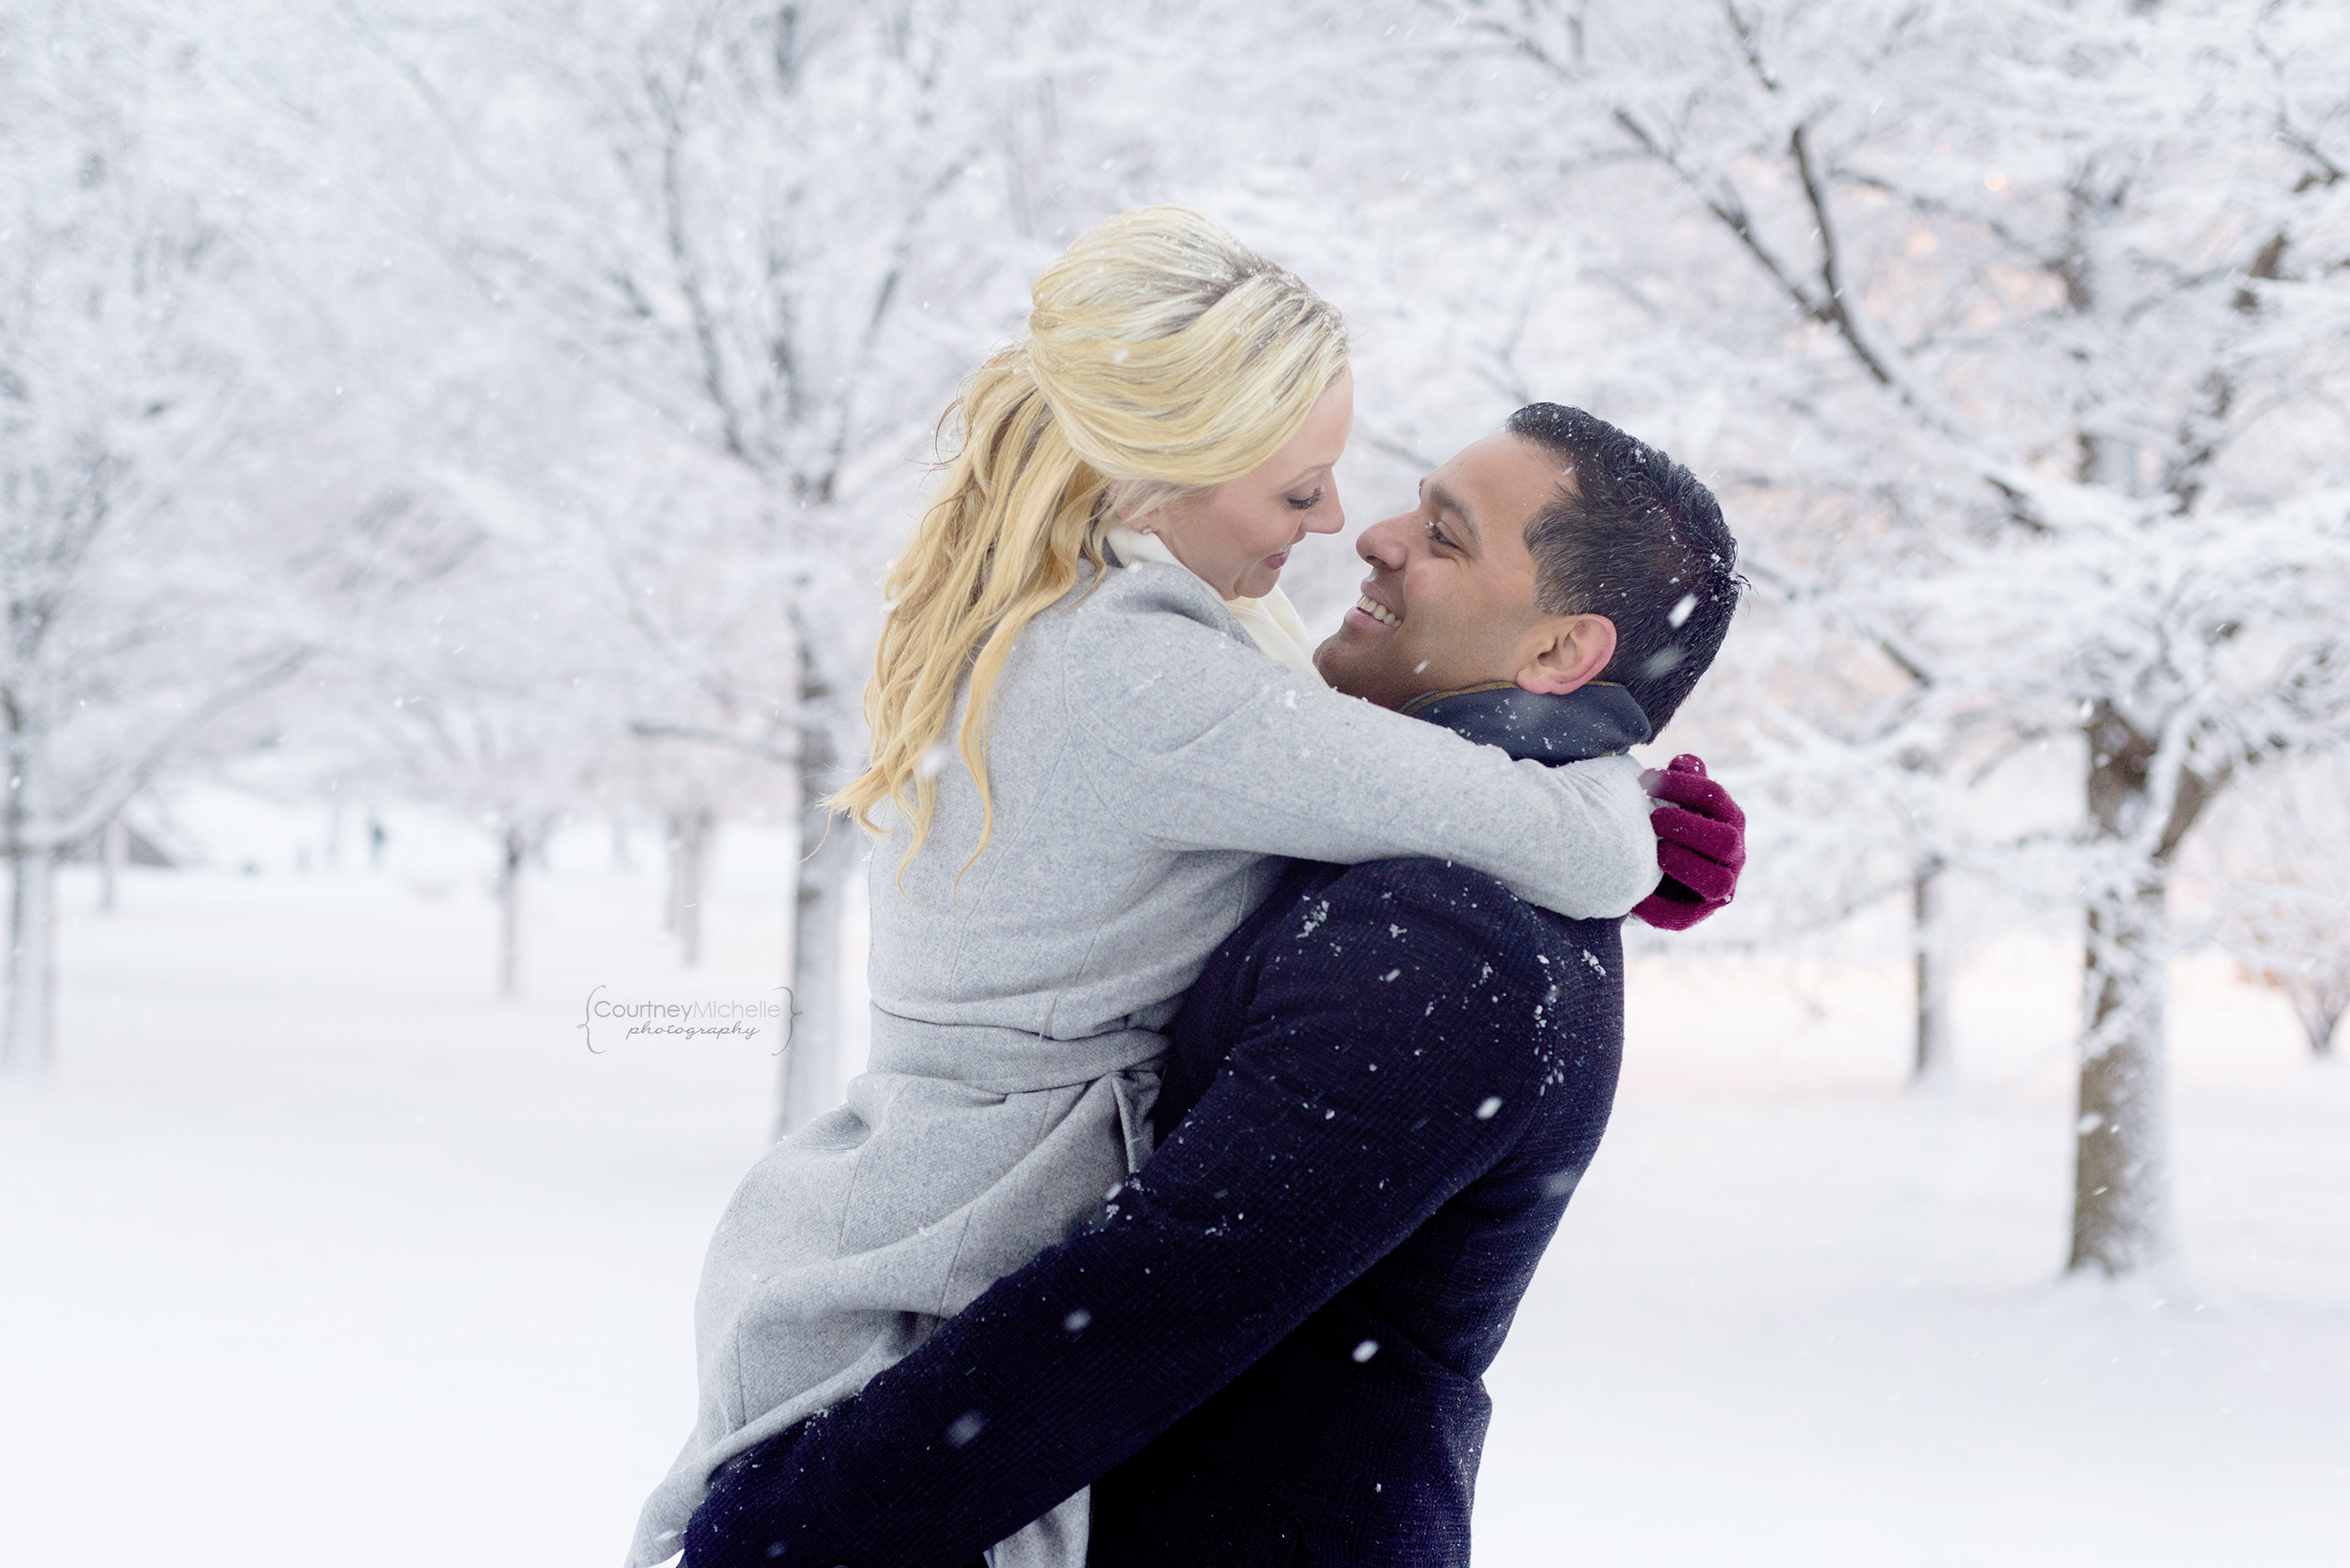 snowy-chicago-engagement-photography-museum-campus-dancing-in-snow-courtney-laper©COPYRIGHTCMP-3523.jpg